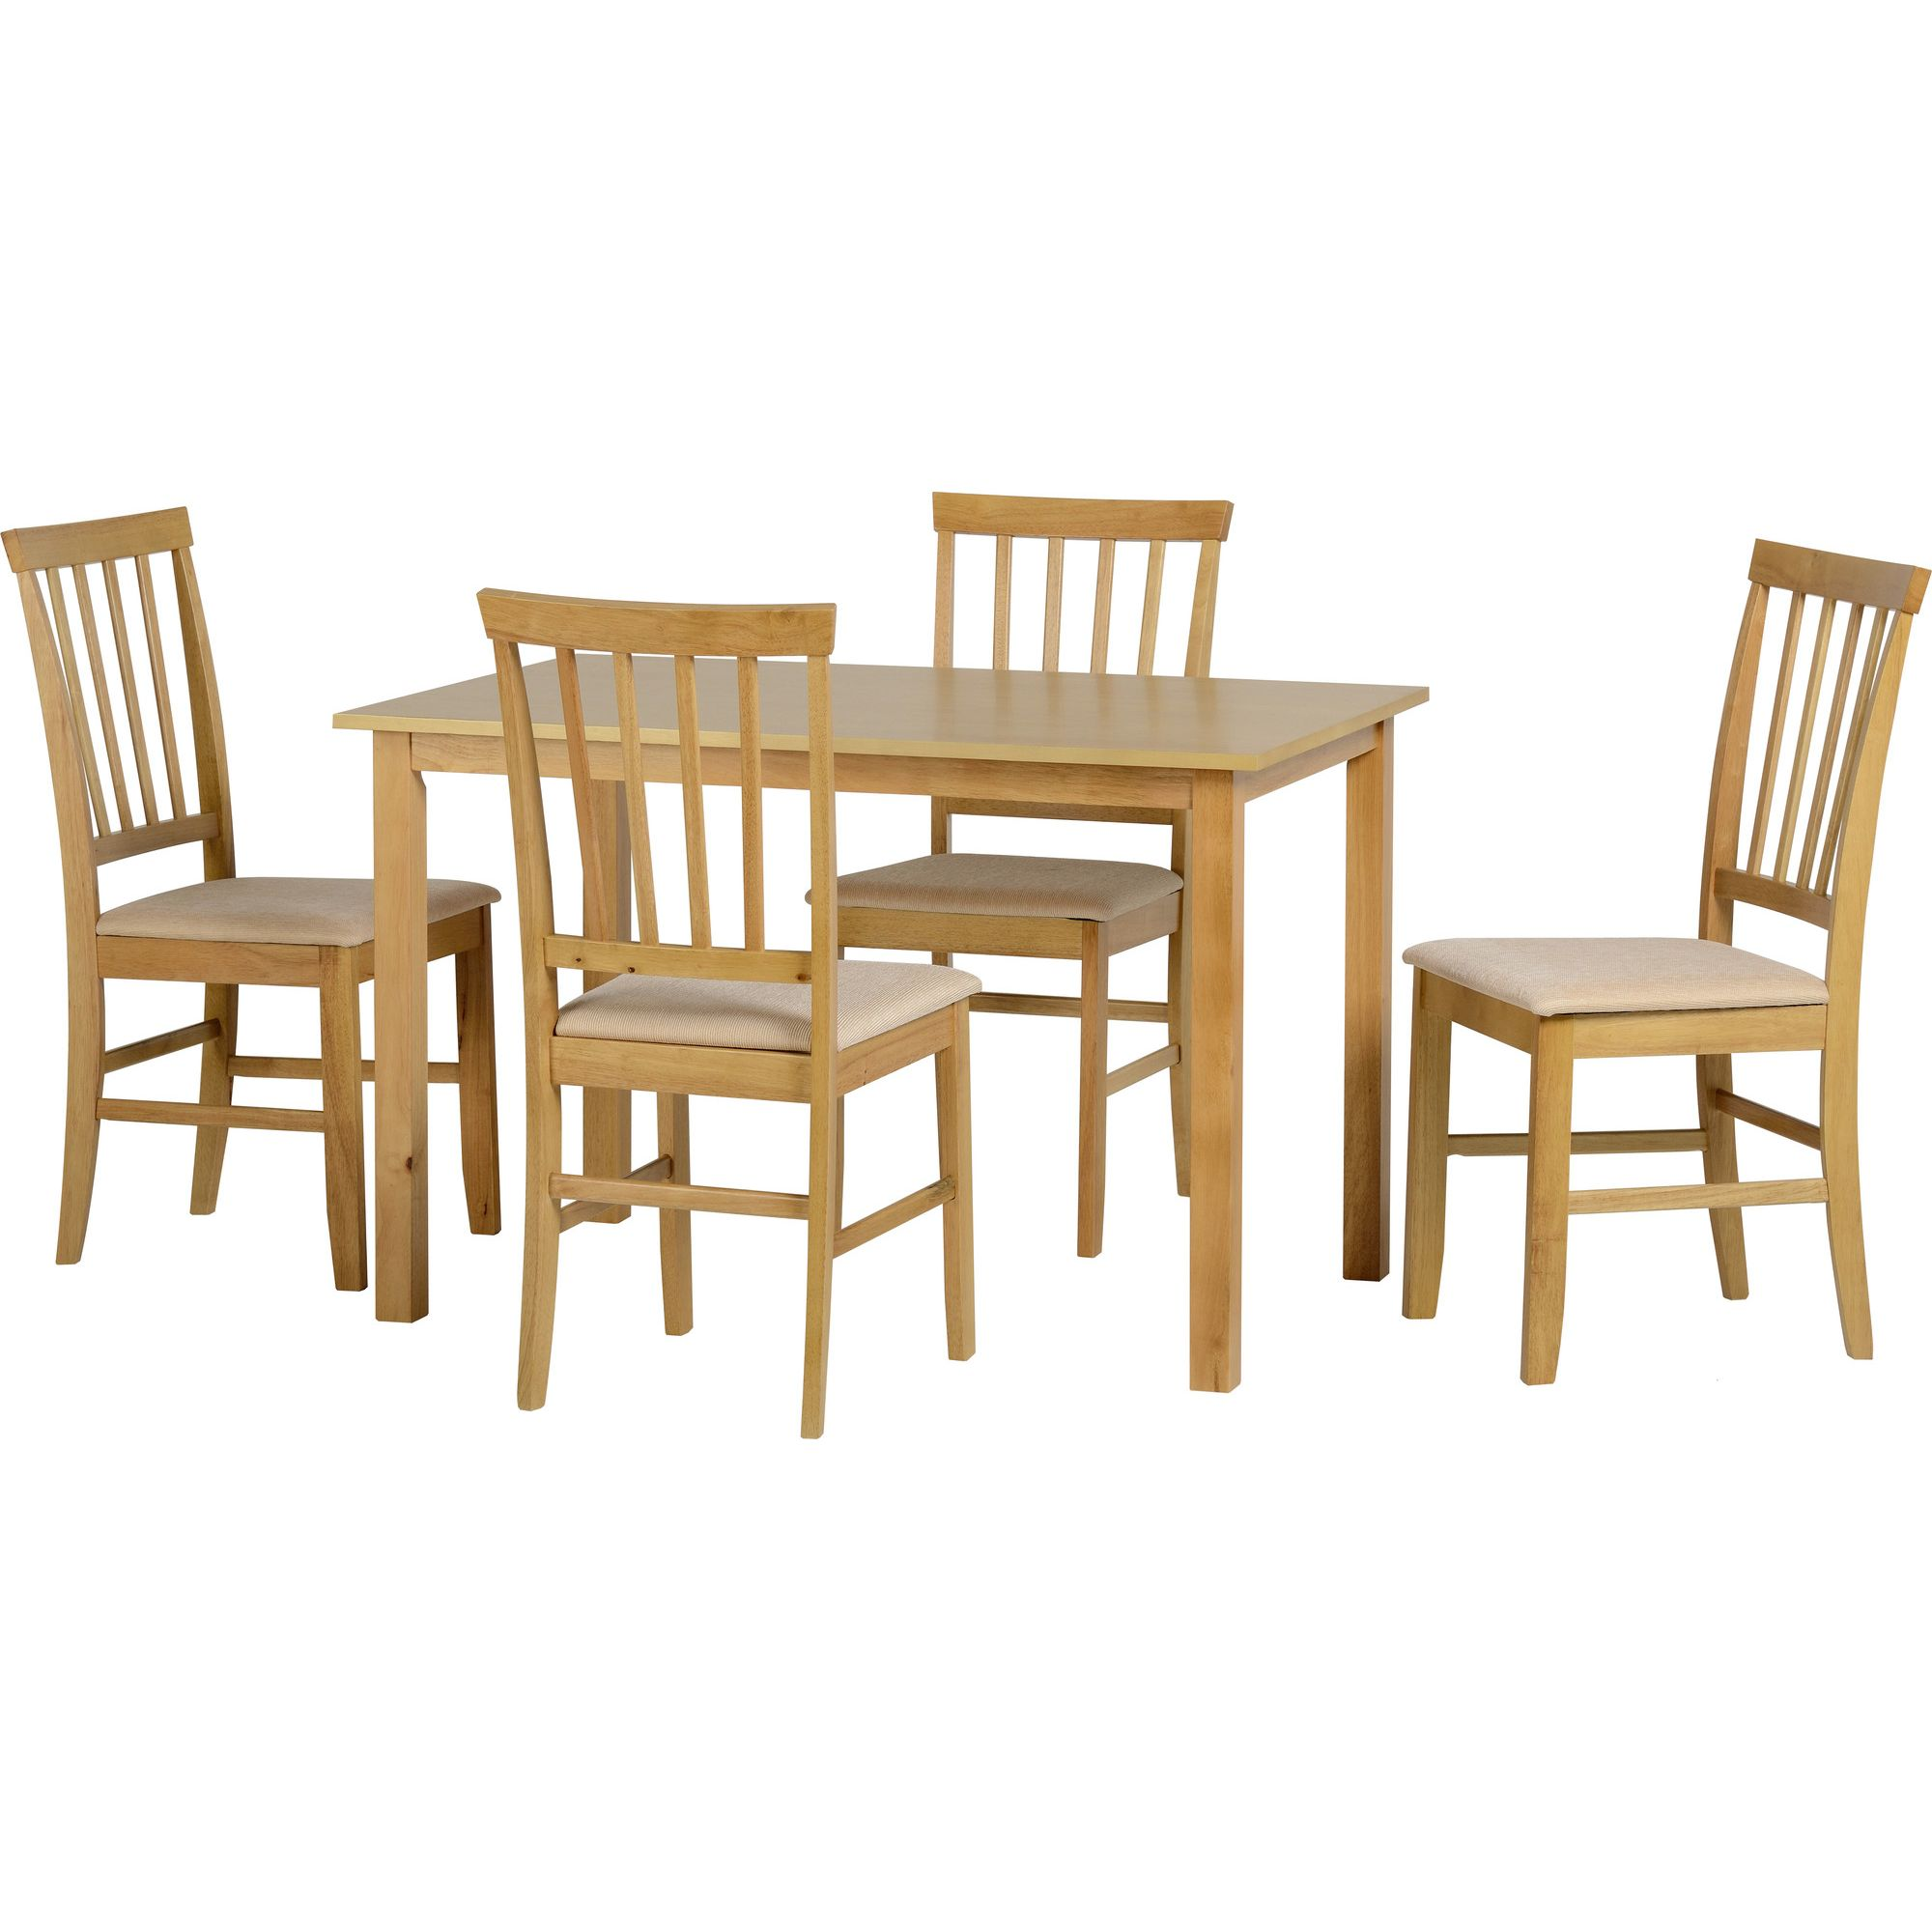 Home Essence Selina 5 Piece Dining Set - with 4 chairs